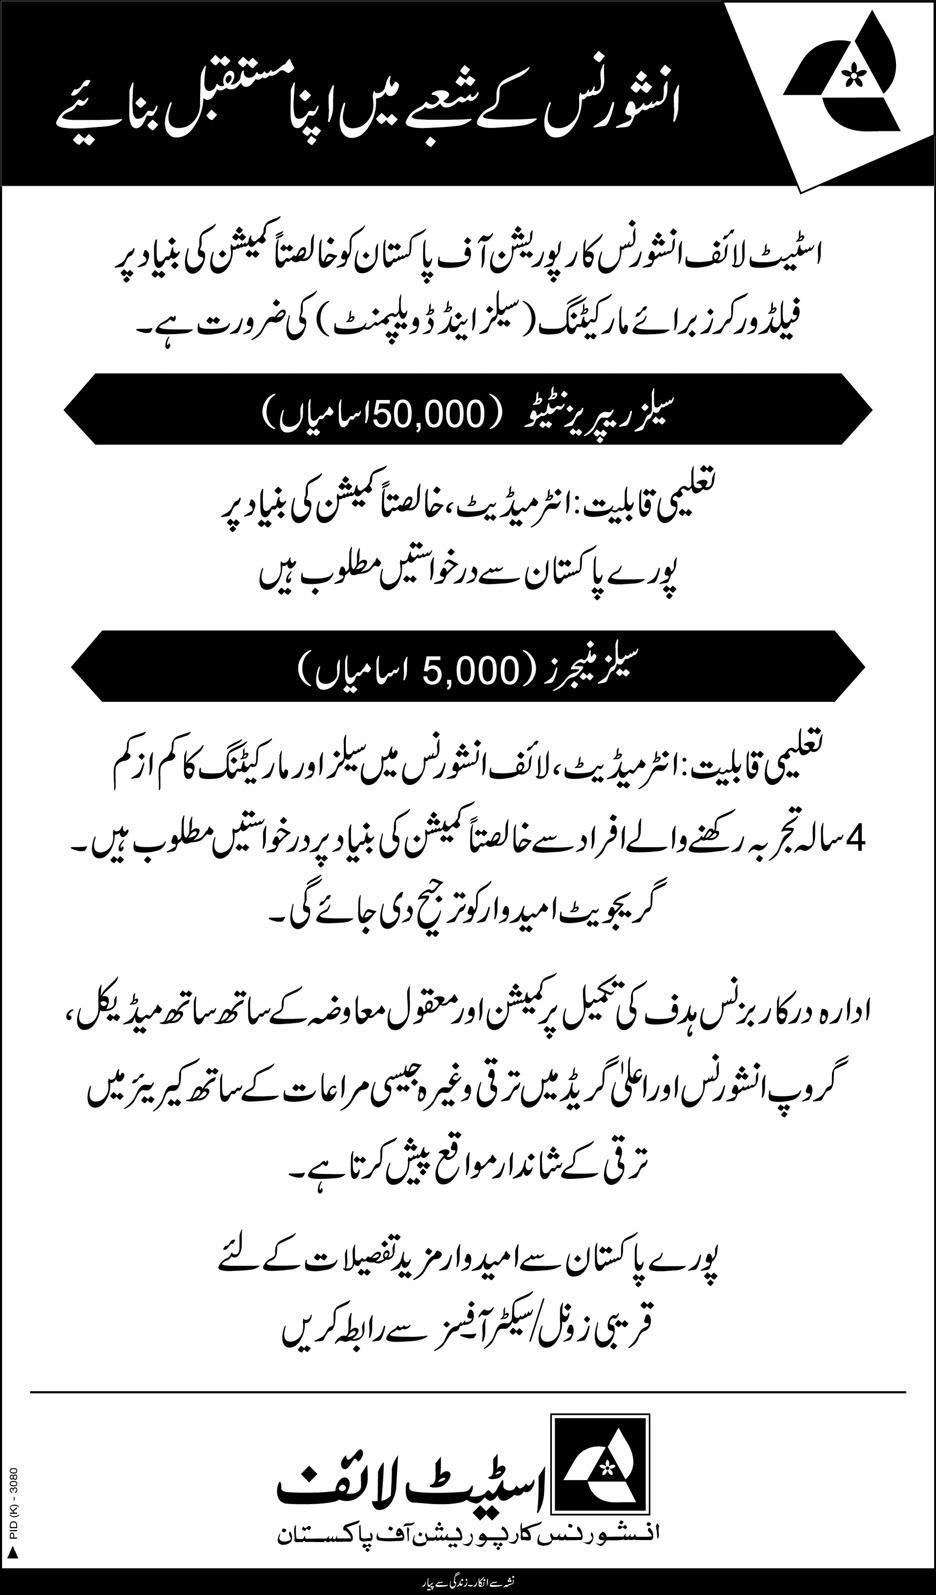 State Life Insurance Corporation Of Pakistan Jobs Feb 2019 : Vacancies 55,000